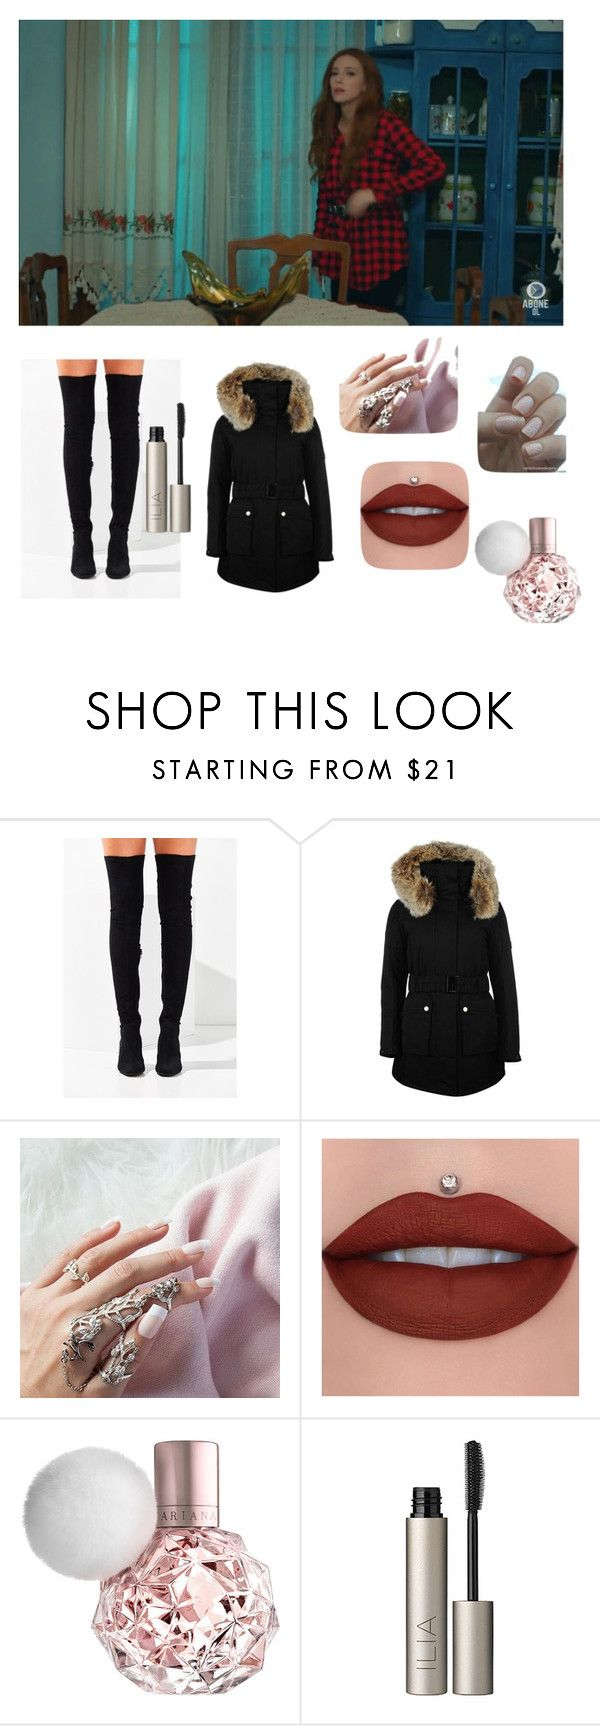 """Untitled #629"" by arzu-alieva ❤ liked on Polyvore featuring beauty, Jeffrey Campbell, K100 Karrimor and Ilia"